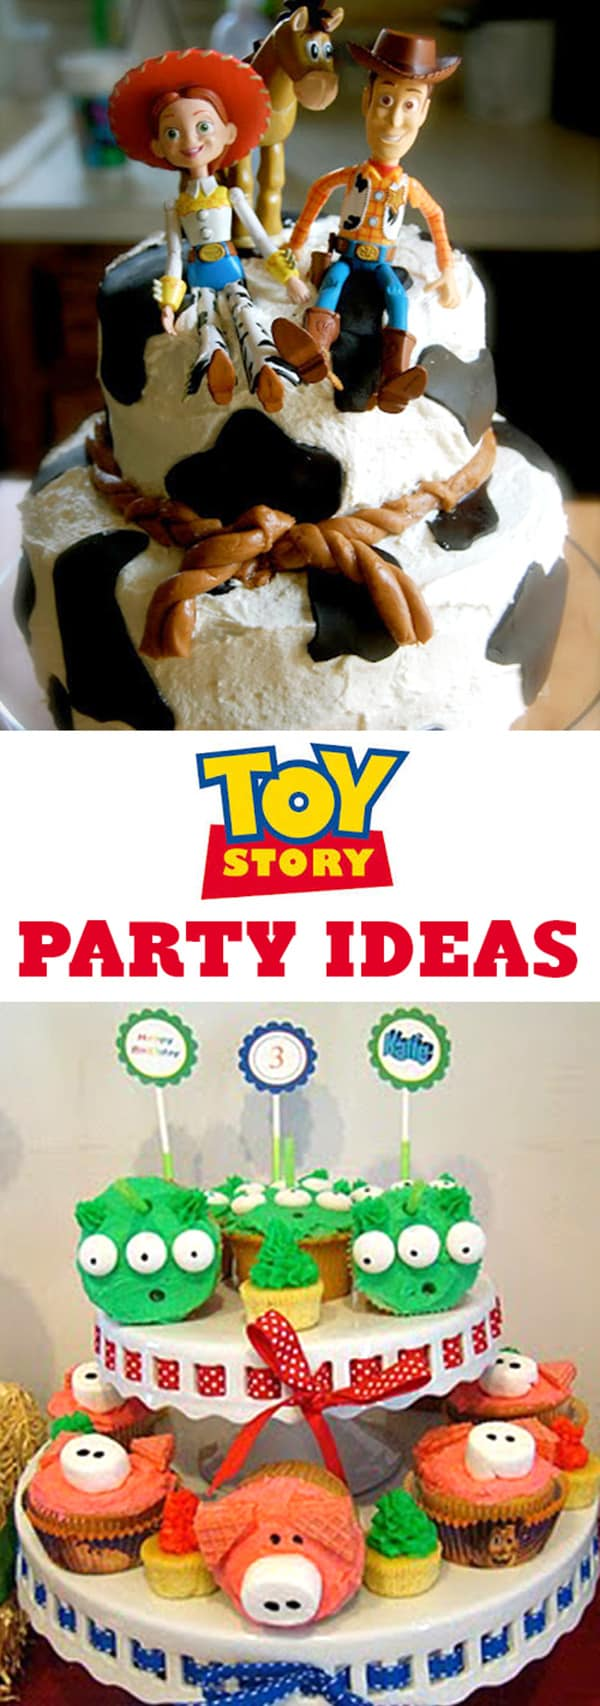 Toy Story Party ideas! Disney Birthday Party Ideas for kids. Cute Woody, Buzz Light Year and the gang themed cakes, cookies, cupcakes, free party printables, party favors, crafts and kid games! LivingLocurto.com